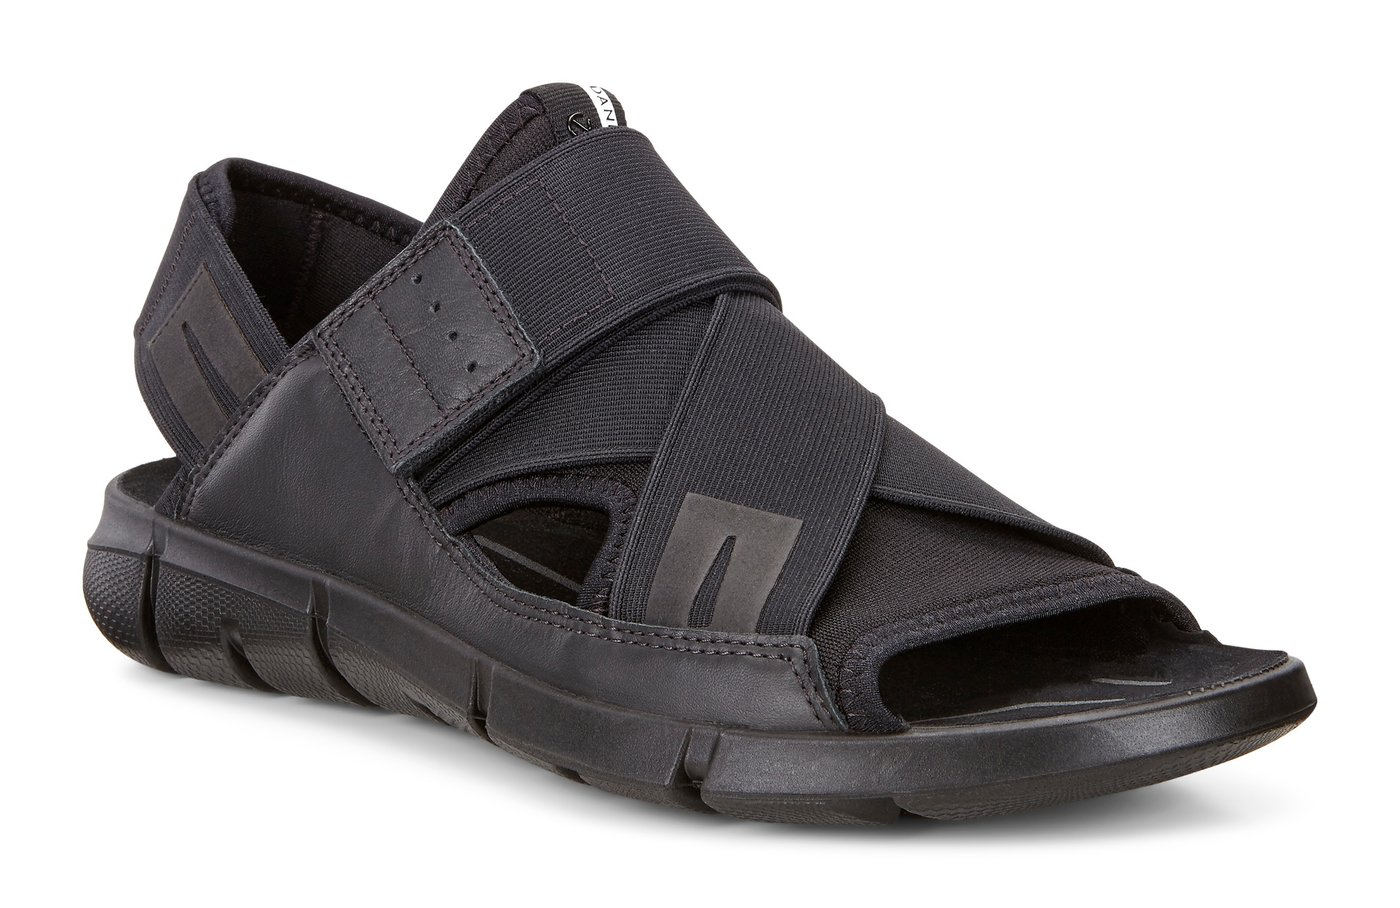 ECCO INTRINSIC Mens Sandal